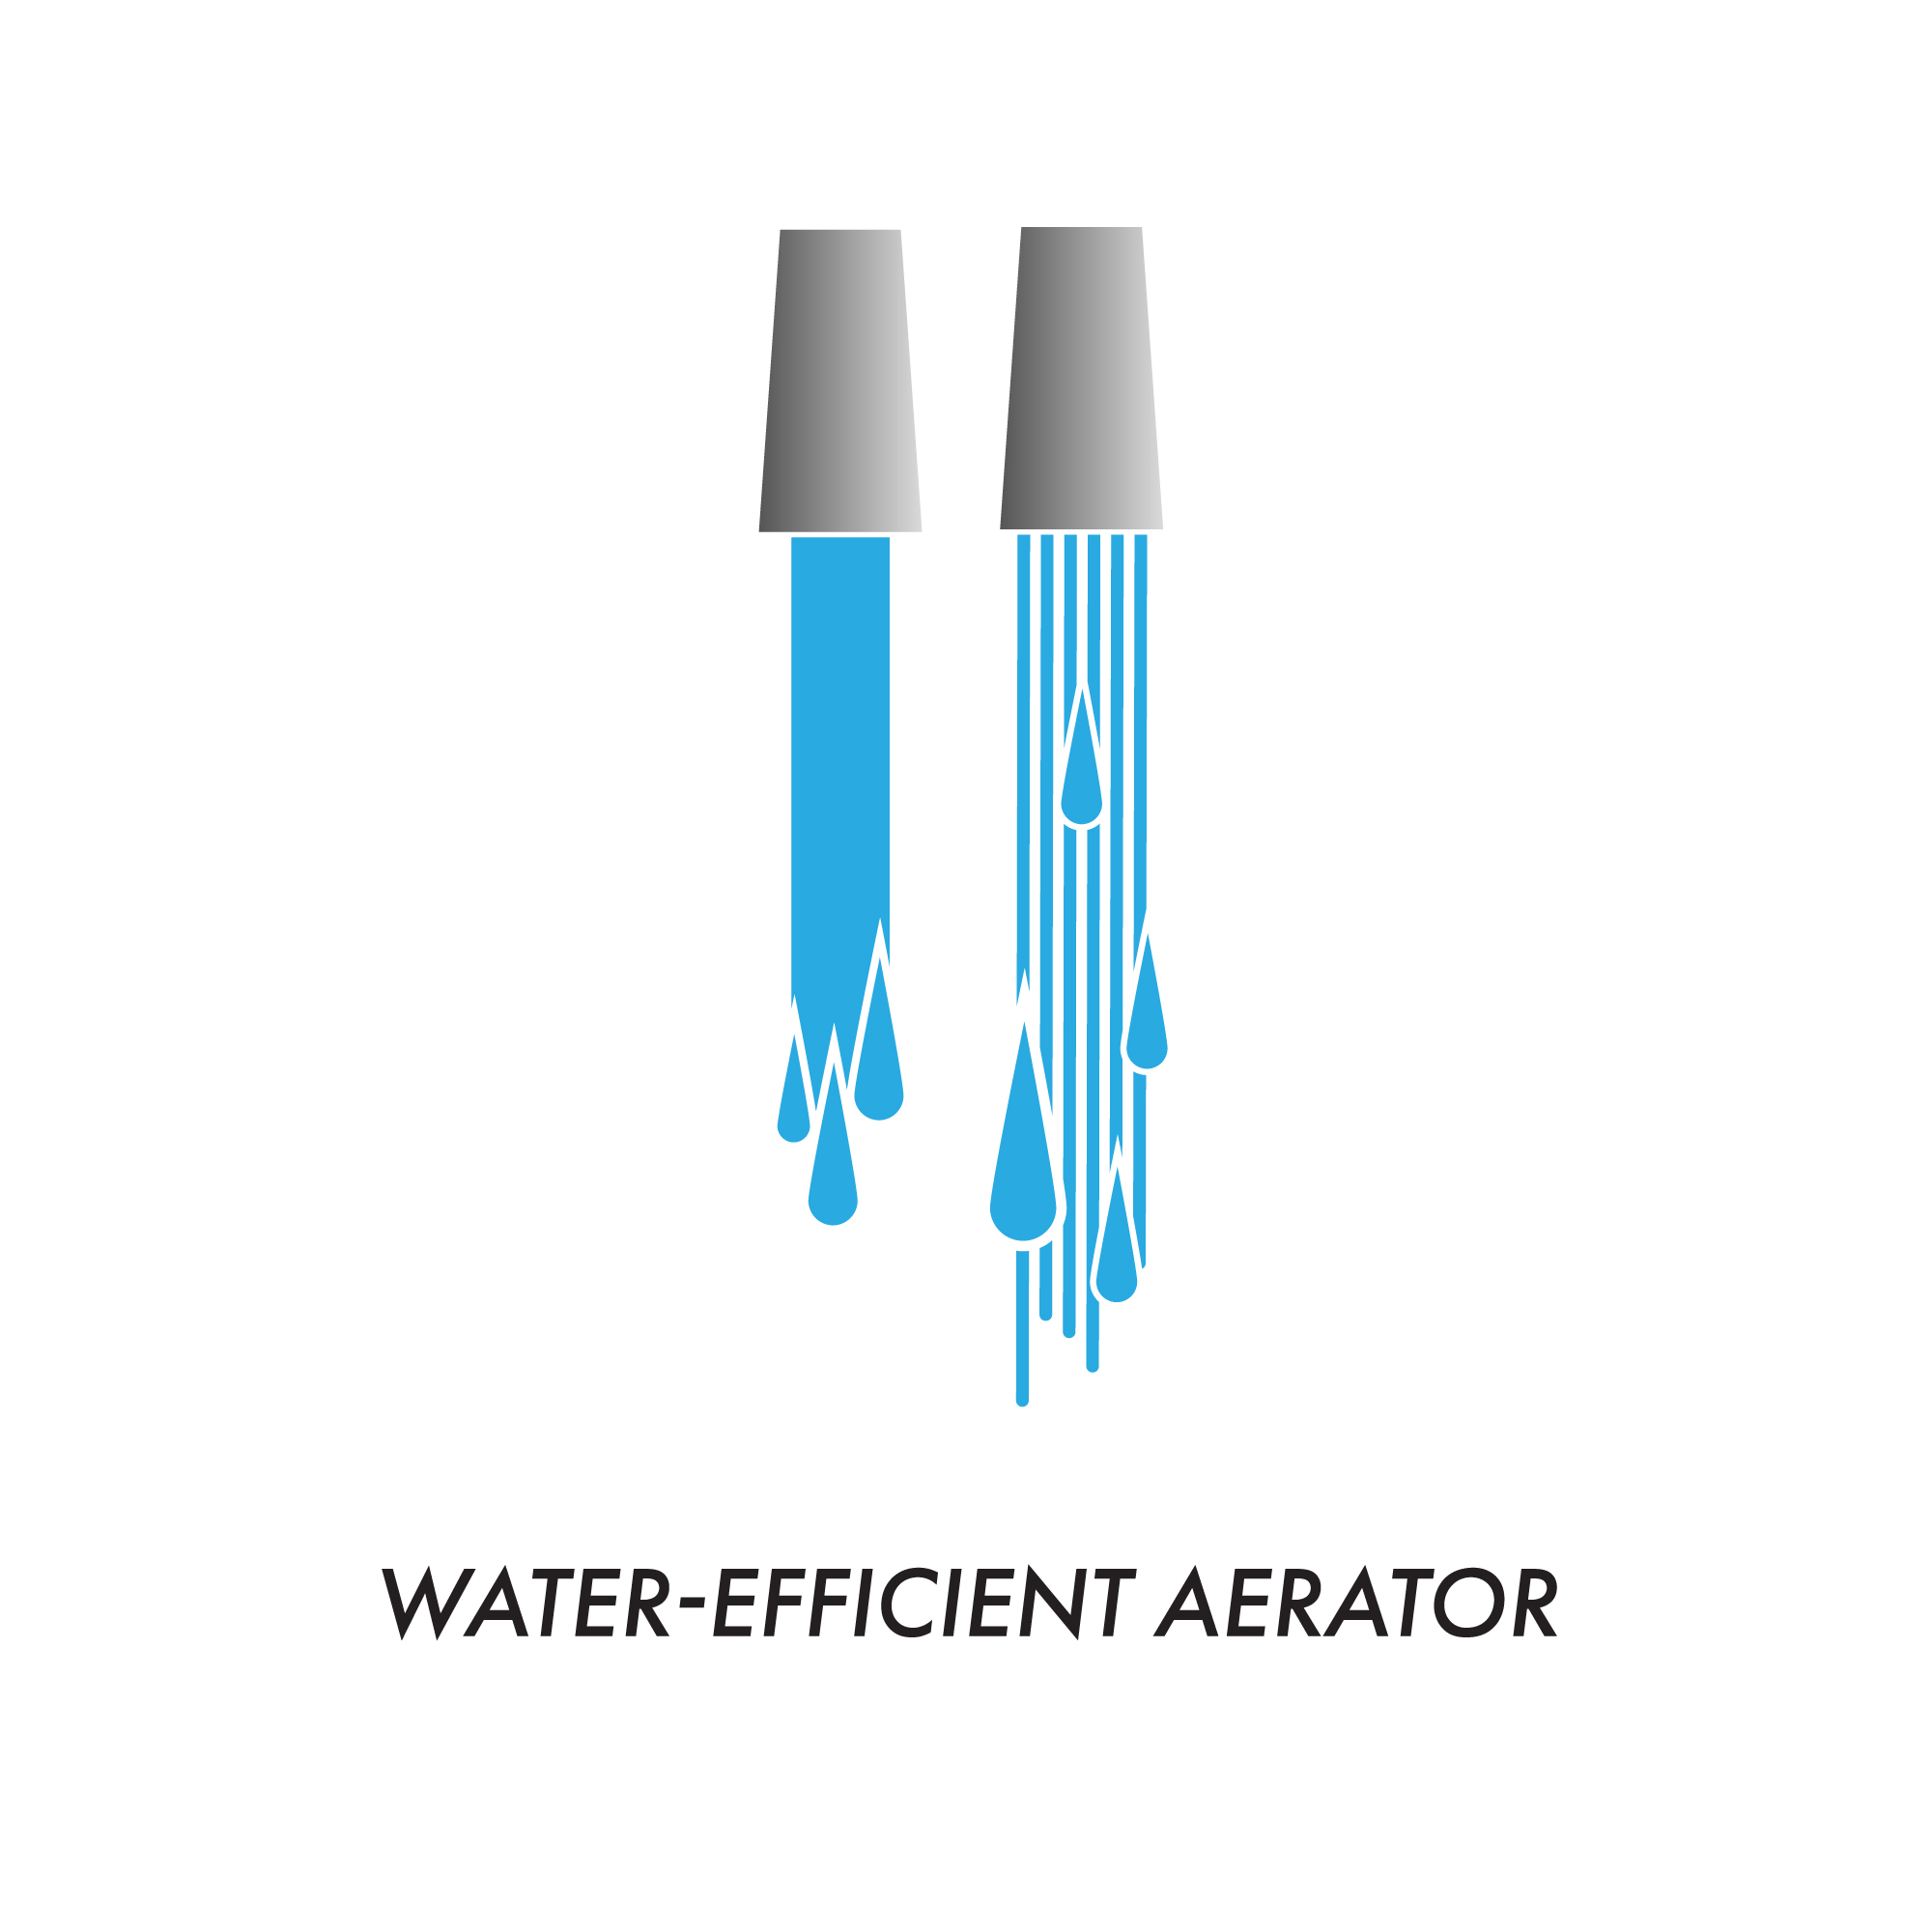 water-efficient-aerator.jpg